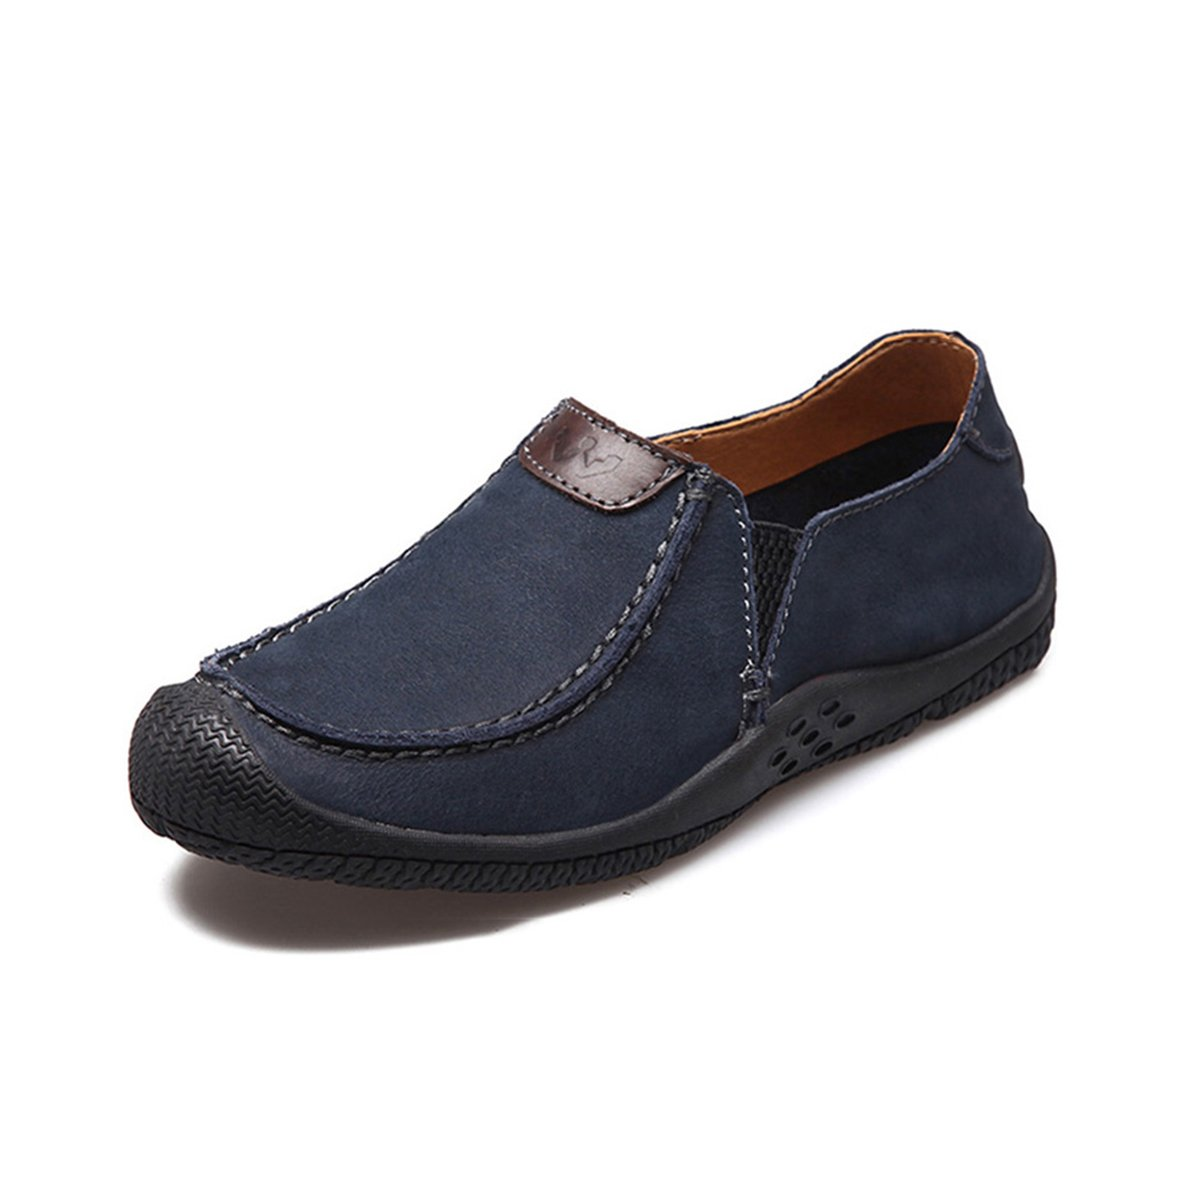 Humg Feng Men Shoes- Casual Leather Loafer Slip on- For Autumn and Winter 8.5